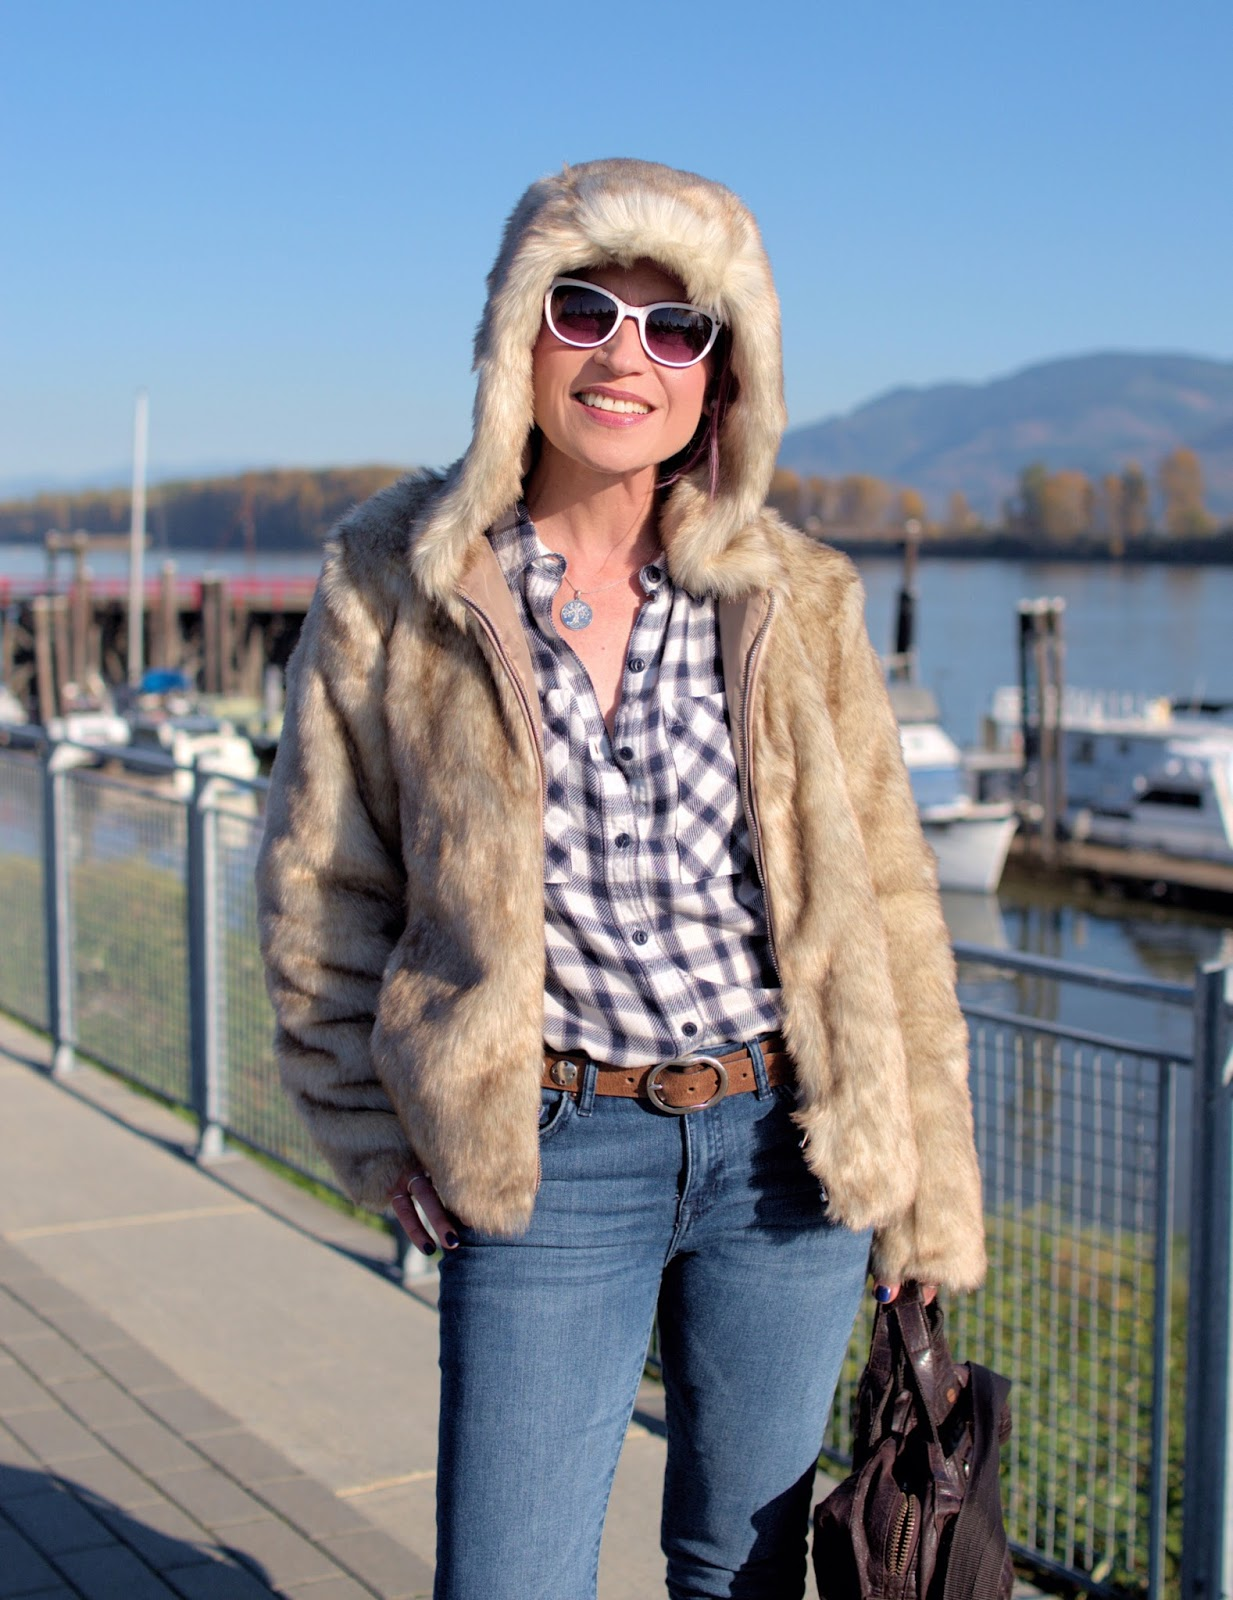 Monika Faulkner outfit inspiration - faux-fur hoodie, plaid flannel shirt, skinny jeans, white sunglasses